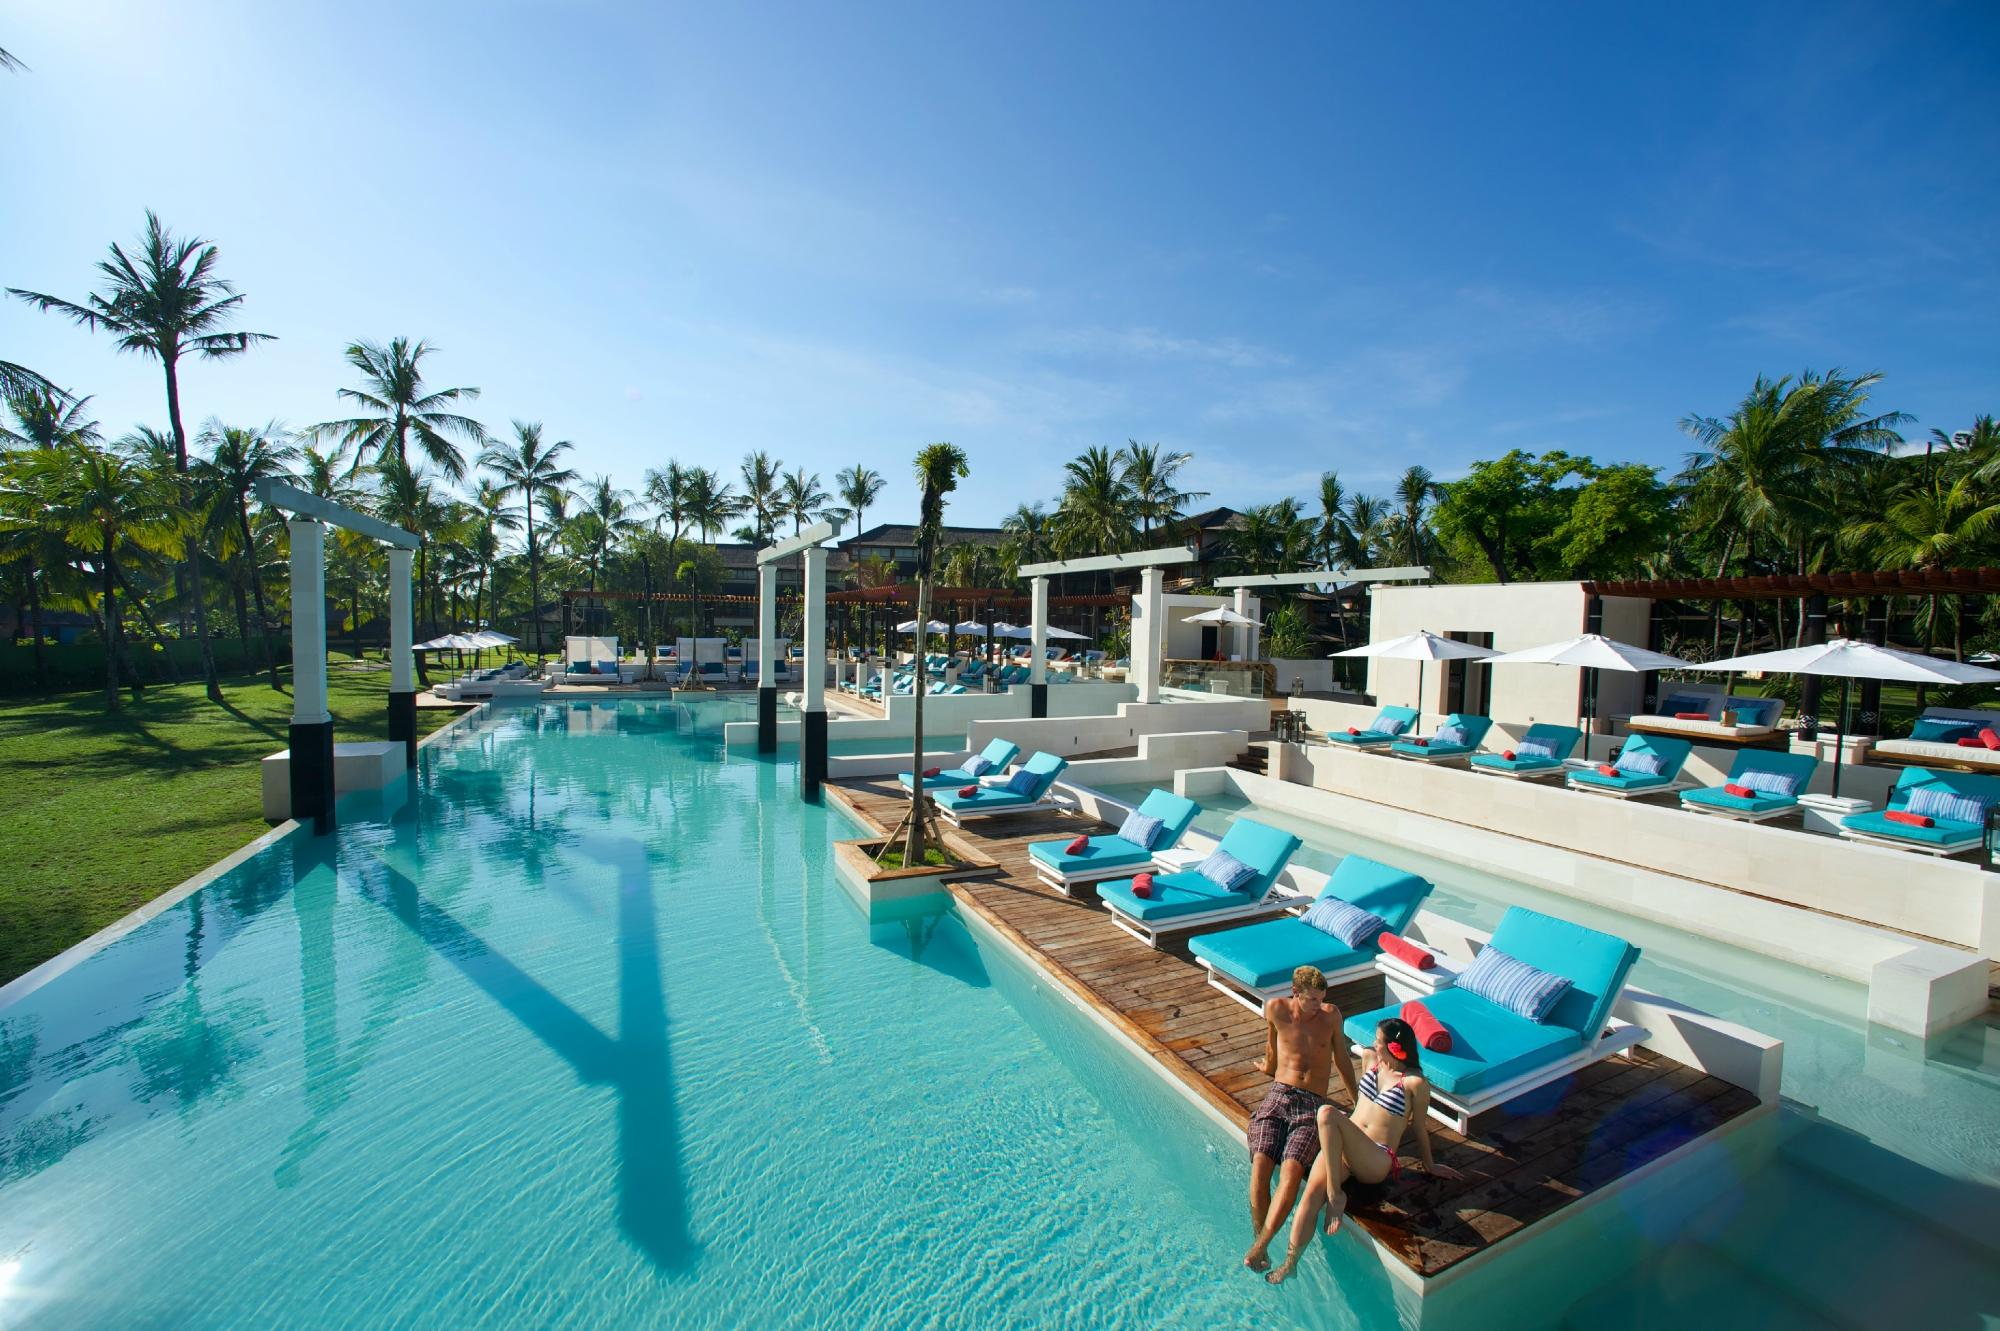 Club Med Bali's Quite Pool Image courtesy Tripadvisor